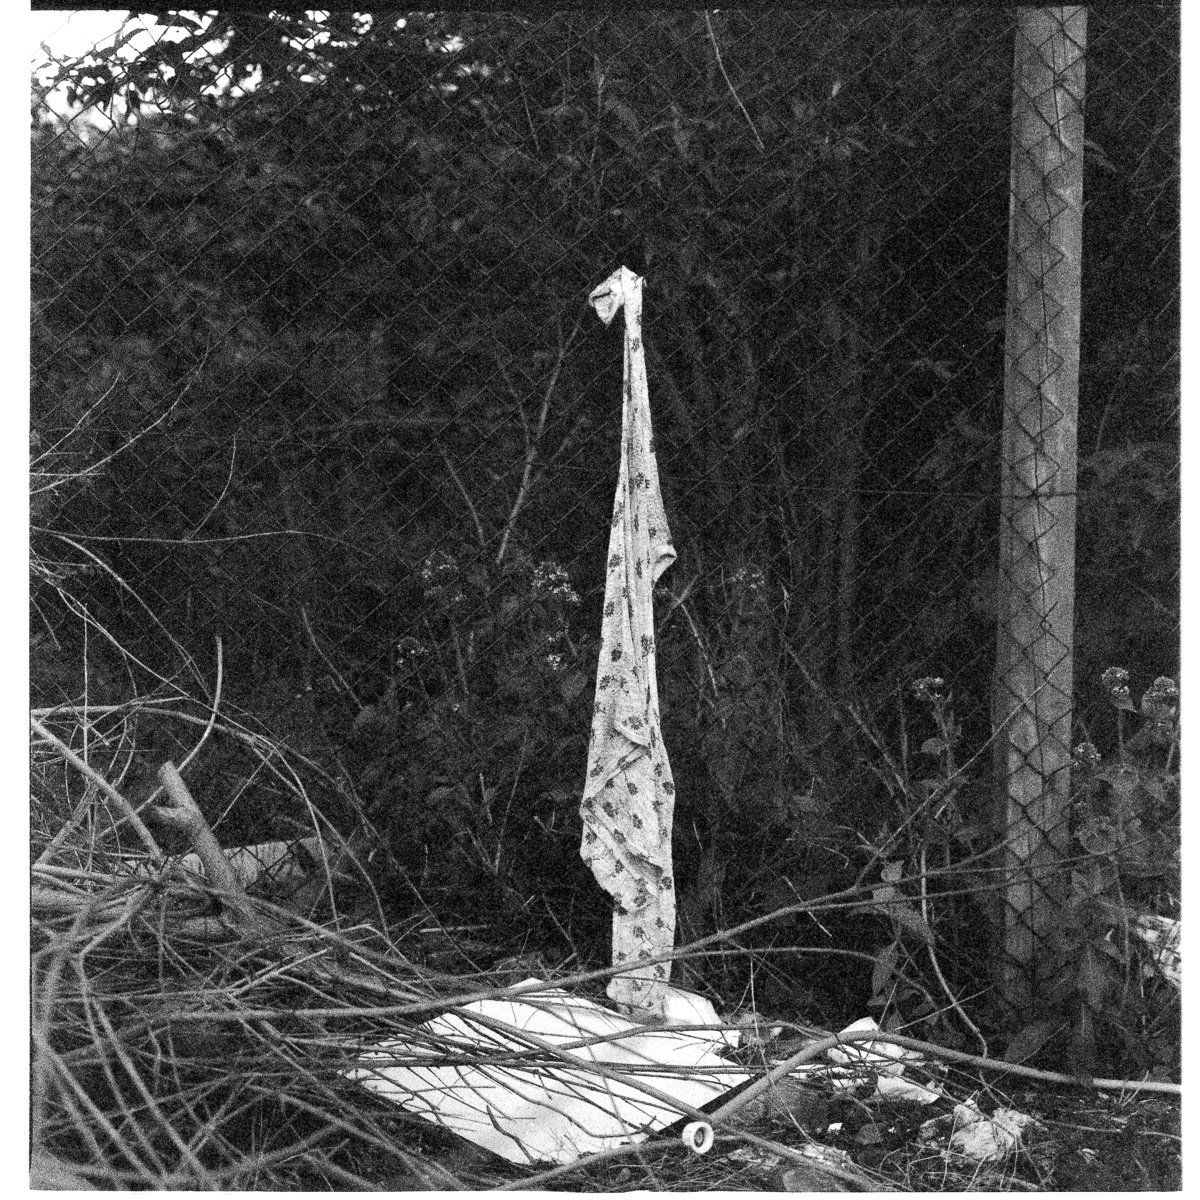 A towel is hung from a chickenwire fence.